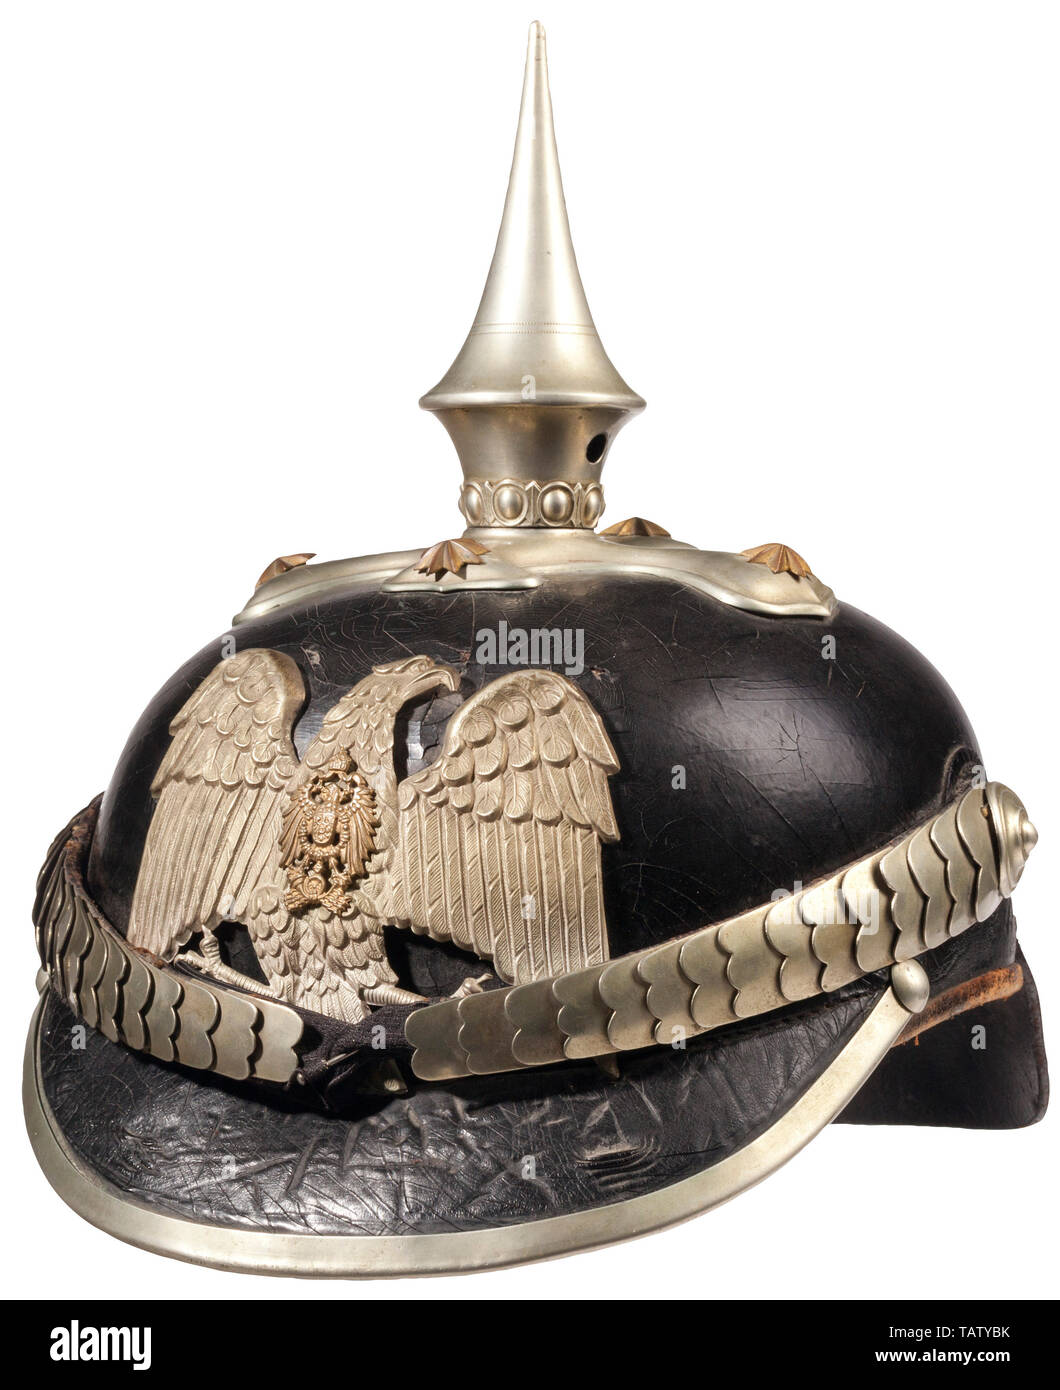 IMPERIAL GERMANY UNTIL 1914, An imperial German police spike helmet Black patent leather body, silver front plate, trim and chin scales, brown leather liner, inside crown is stamped. CCN7088, Additional-Rights-Clearance-Info-Not-Available - Stock Image